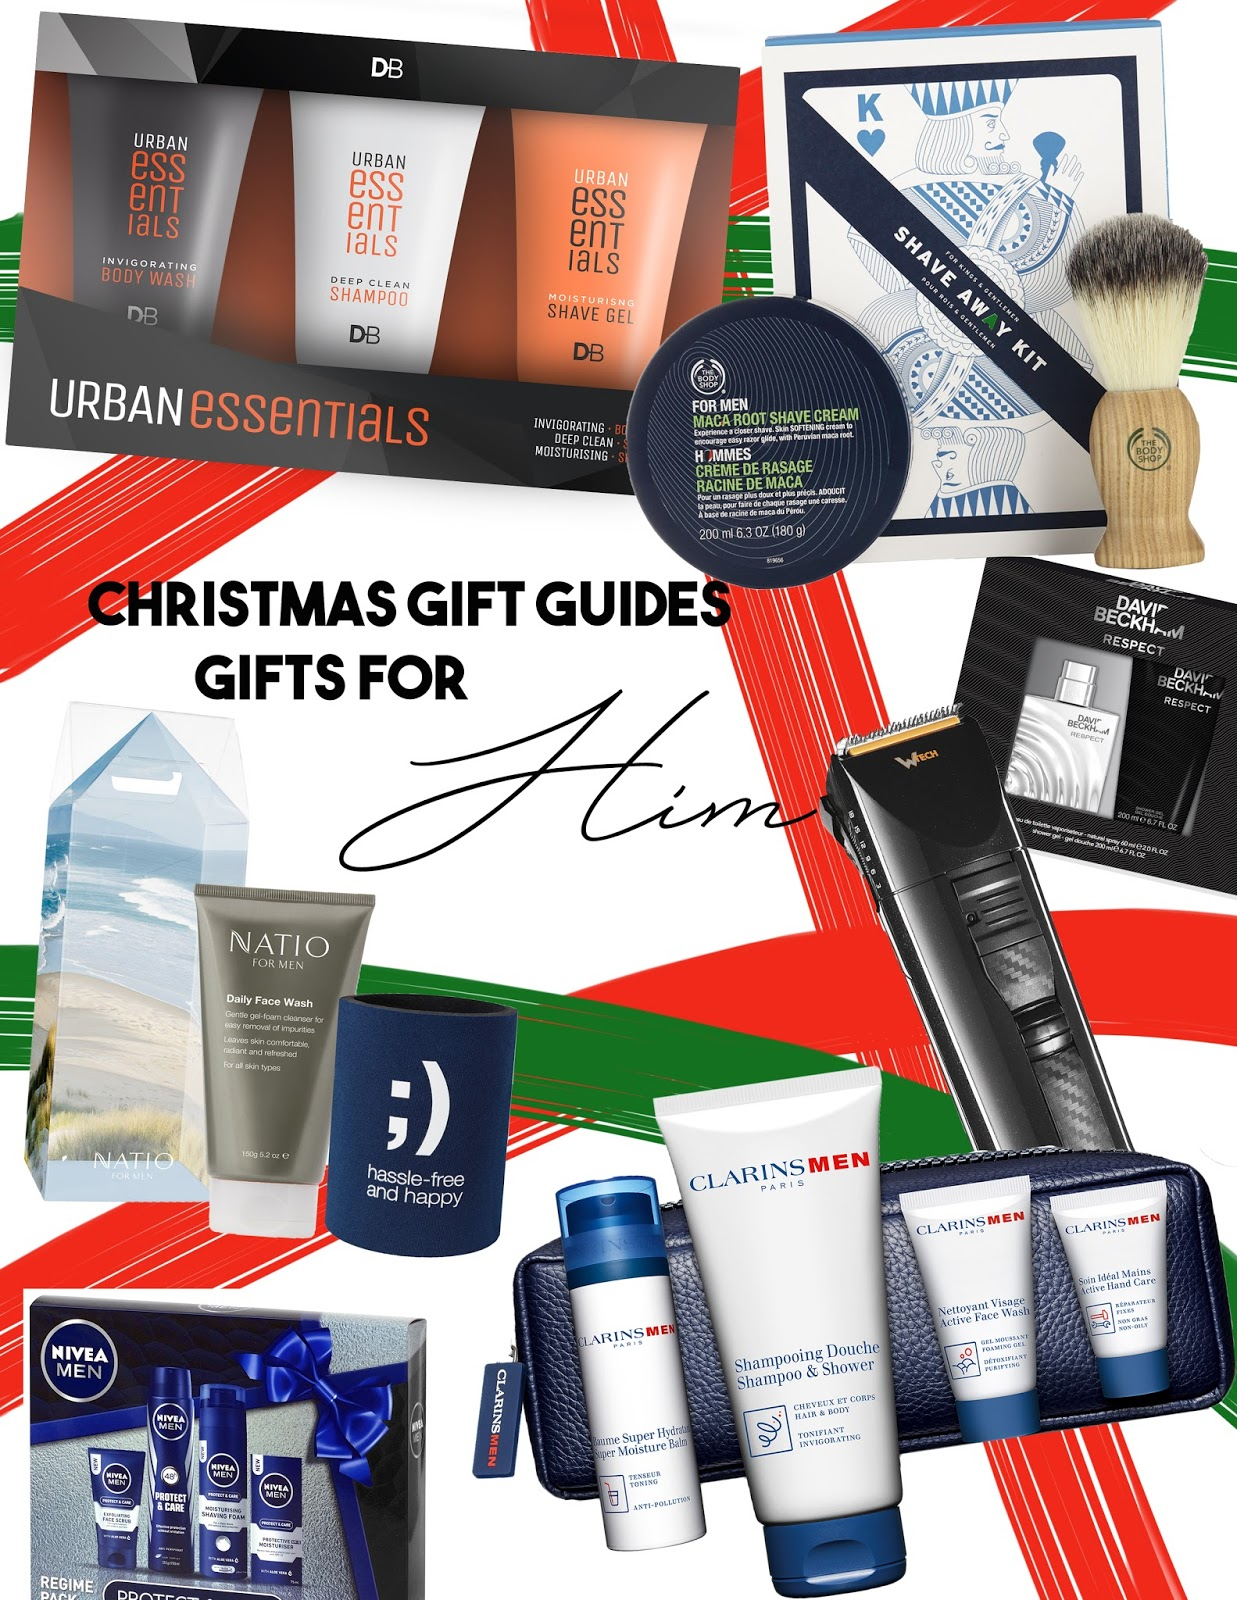 if you know a guy who is somewhat beauty inclined or you would like to convince him to be buy buying him some gifts then these options might suit you